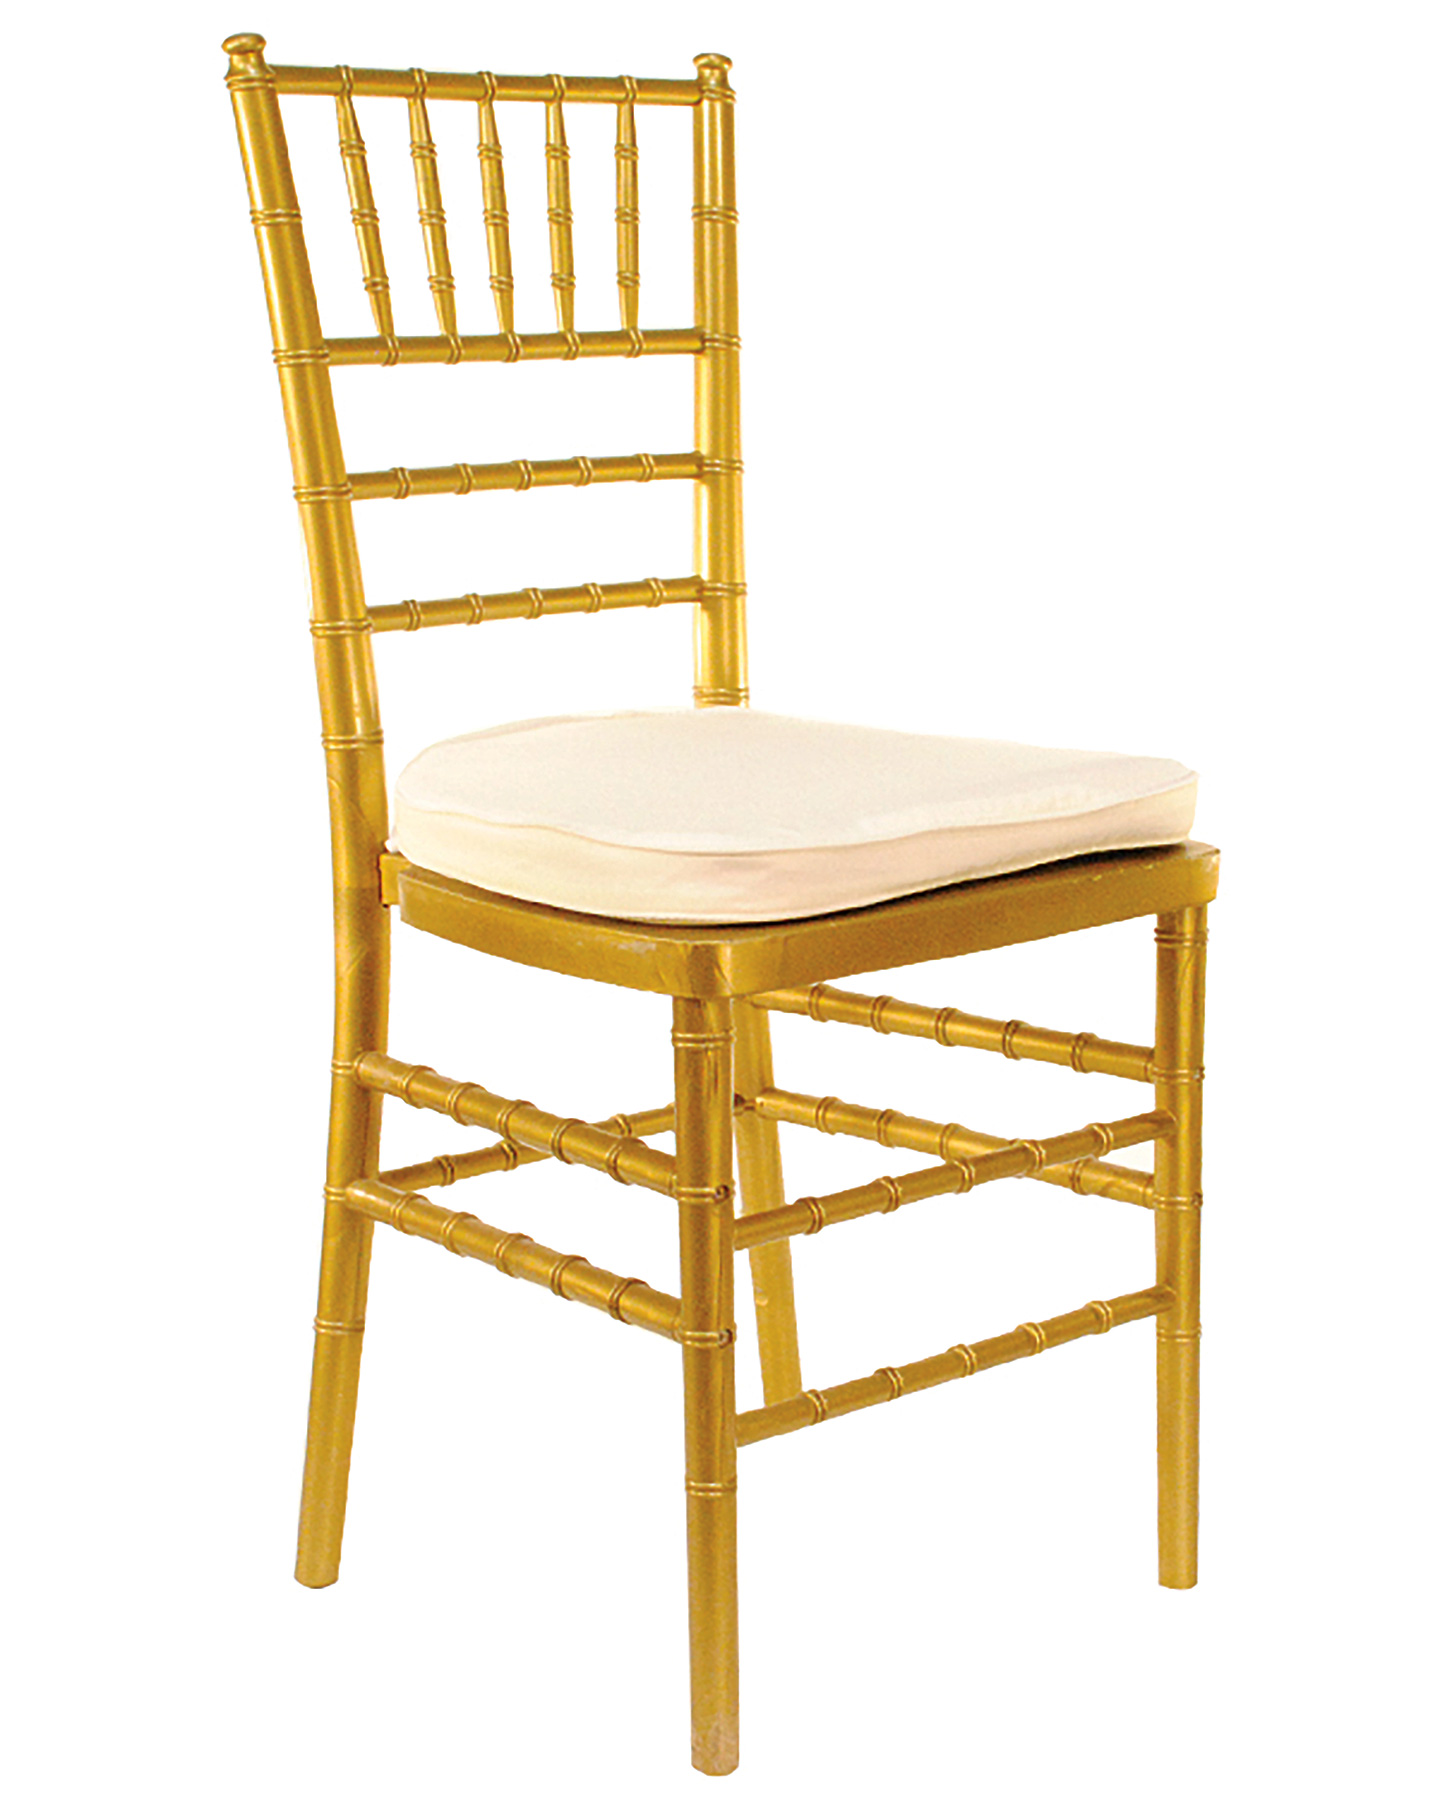 metal chair covers wedding target rocking chairs gold tan white cushion belle weddings and eventsbelle